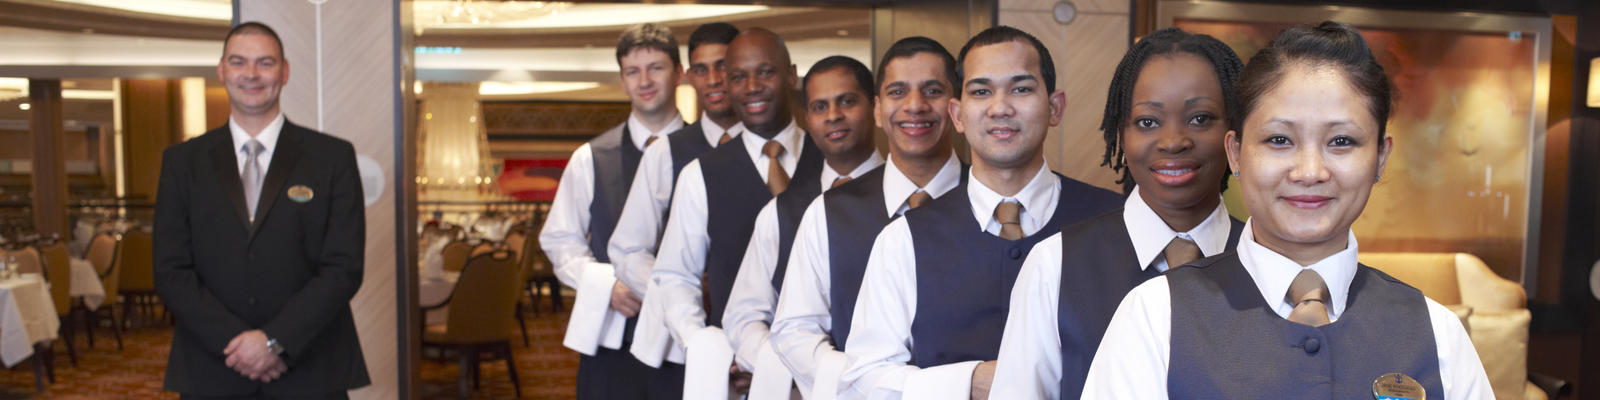 Dining room staff on Royal Caribbean's Allure of the Seas (Photo: Royal Caribbean International)